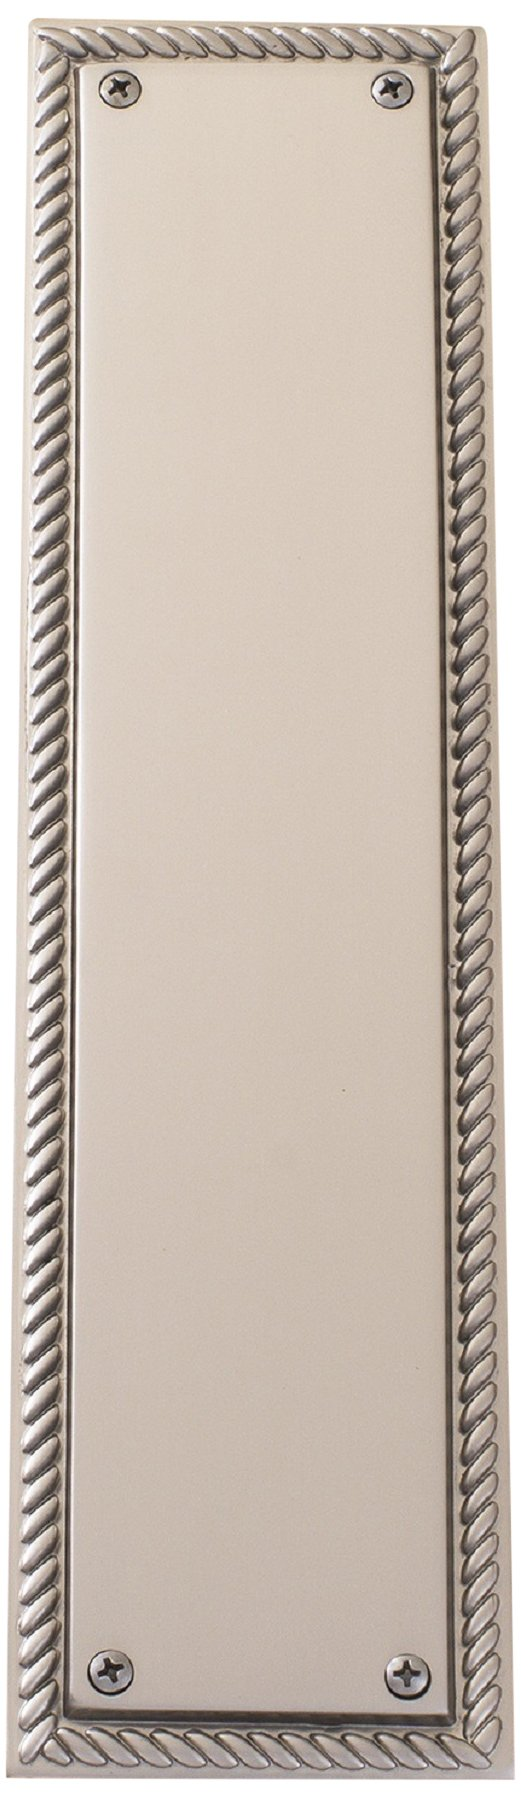 BRASS Accents A06-P0240-619 Academy Push Plate, 3-1/8'' x 12'' Satin Nickel by BRASS Accents (Image #1)